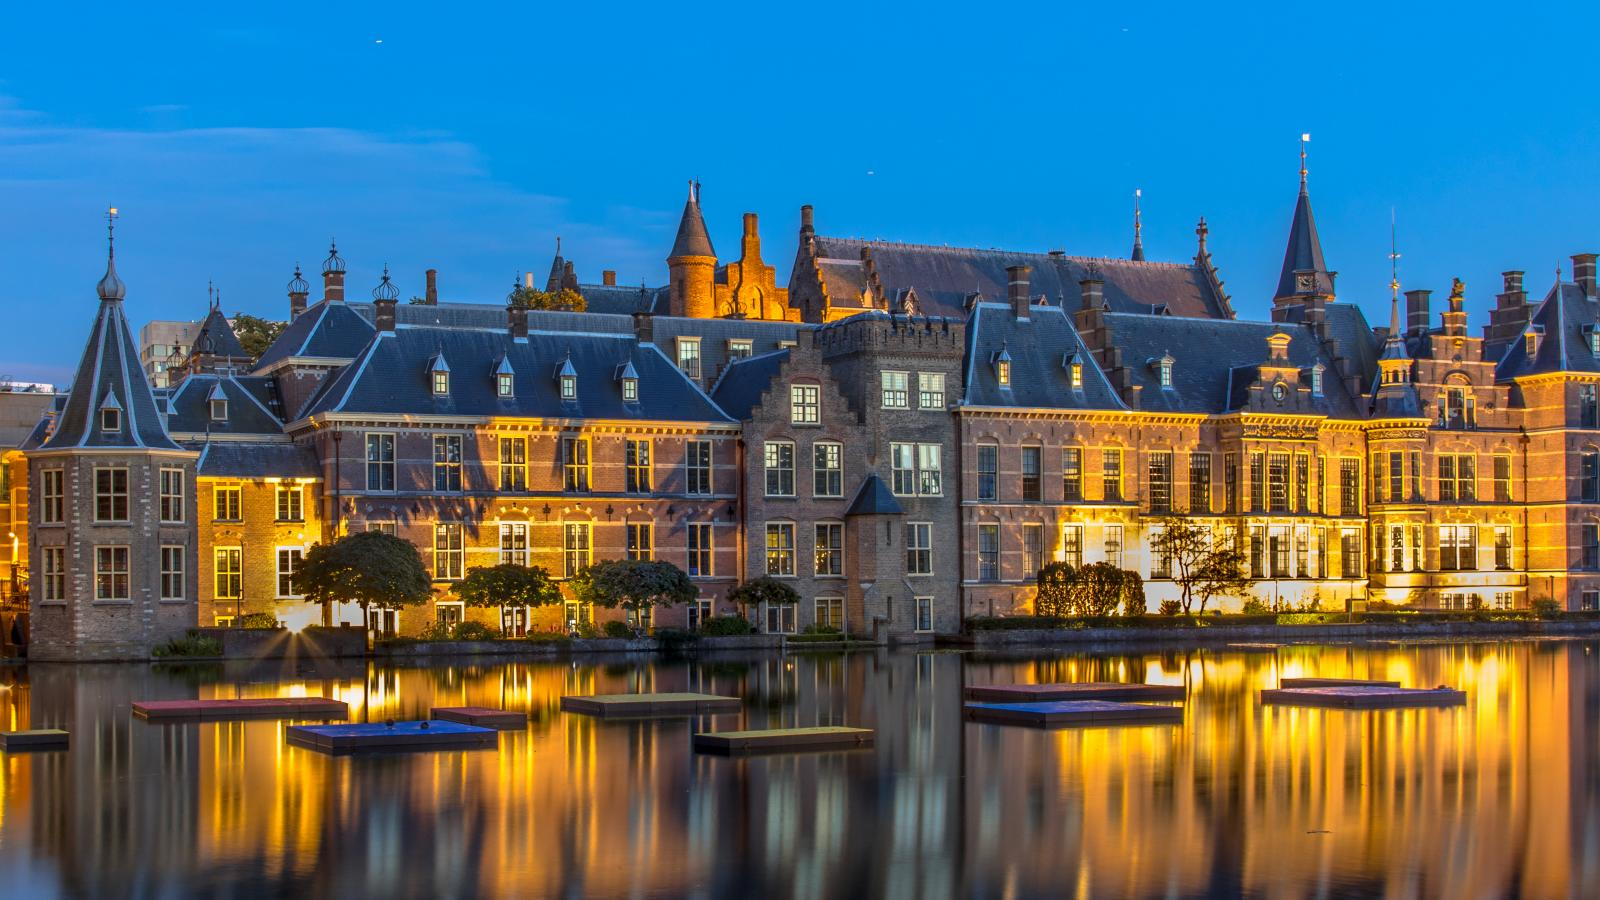 Parliament Binnenhof The Hague - Amsterdam